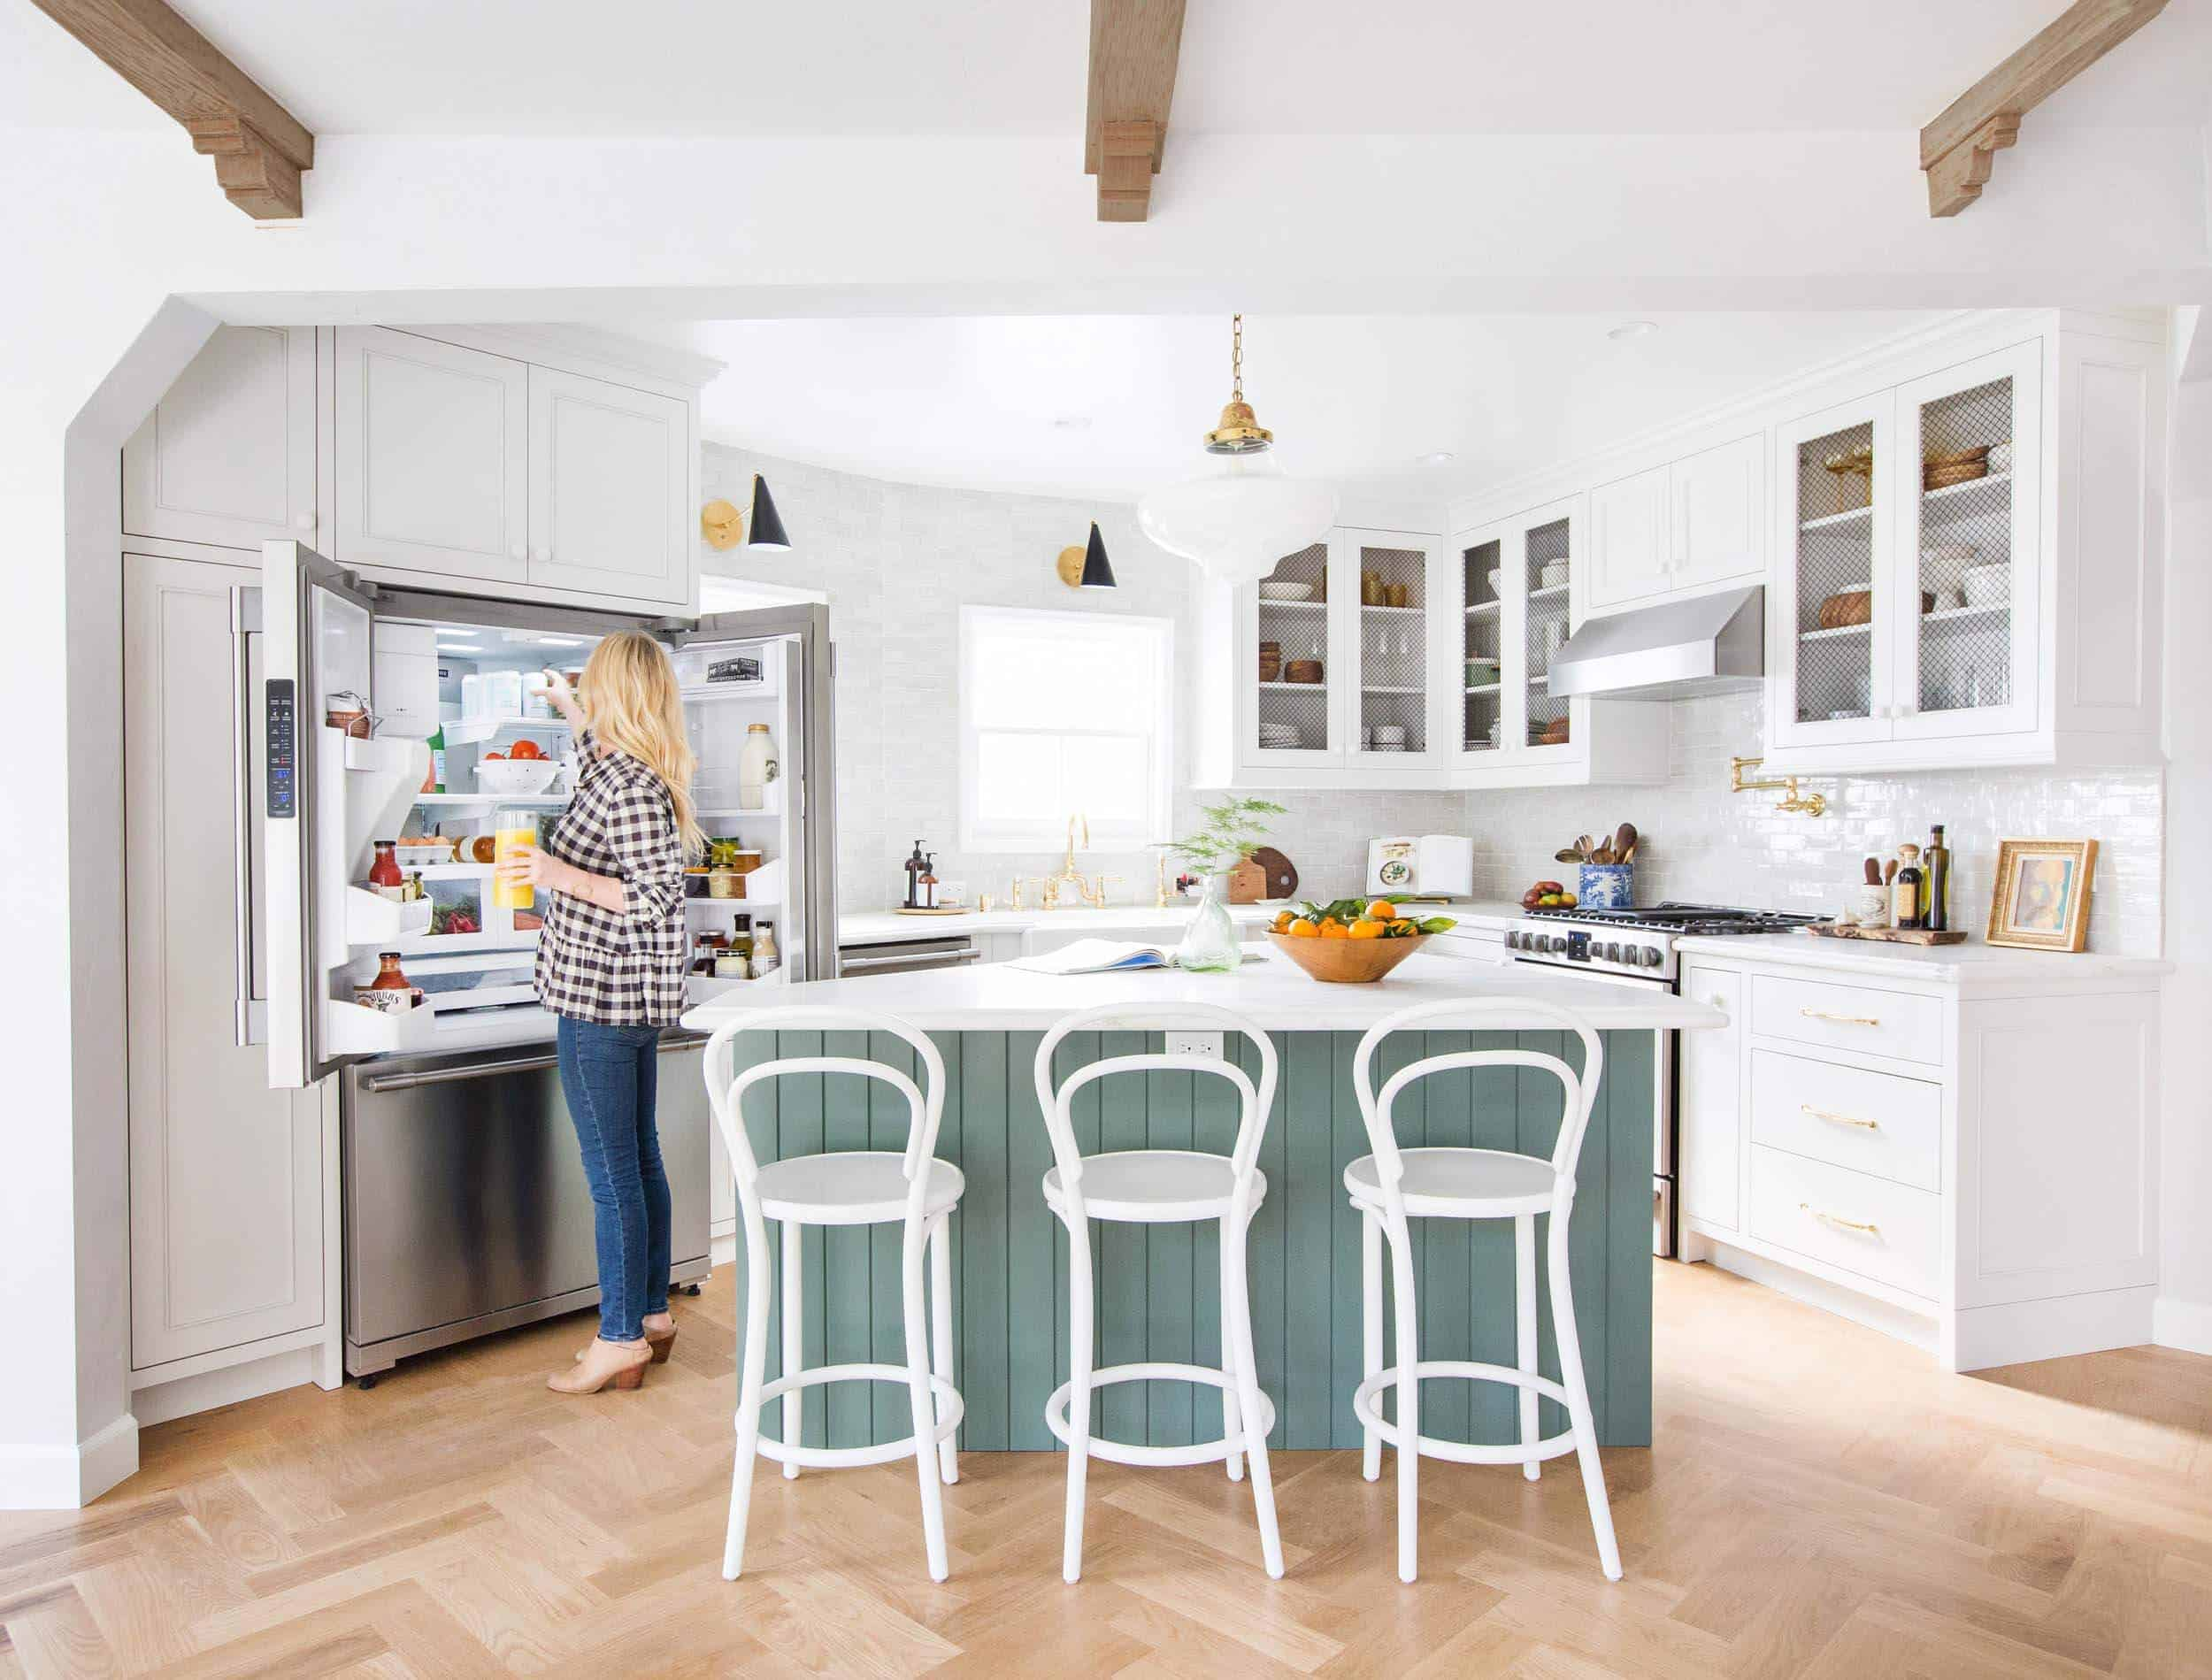 emily-henderson_frigidaire_kitchen-reveal_waverly_english-modern_edited-beams_13